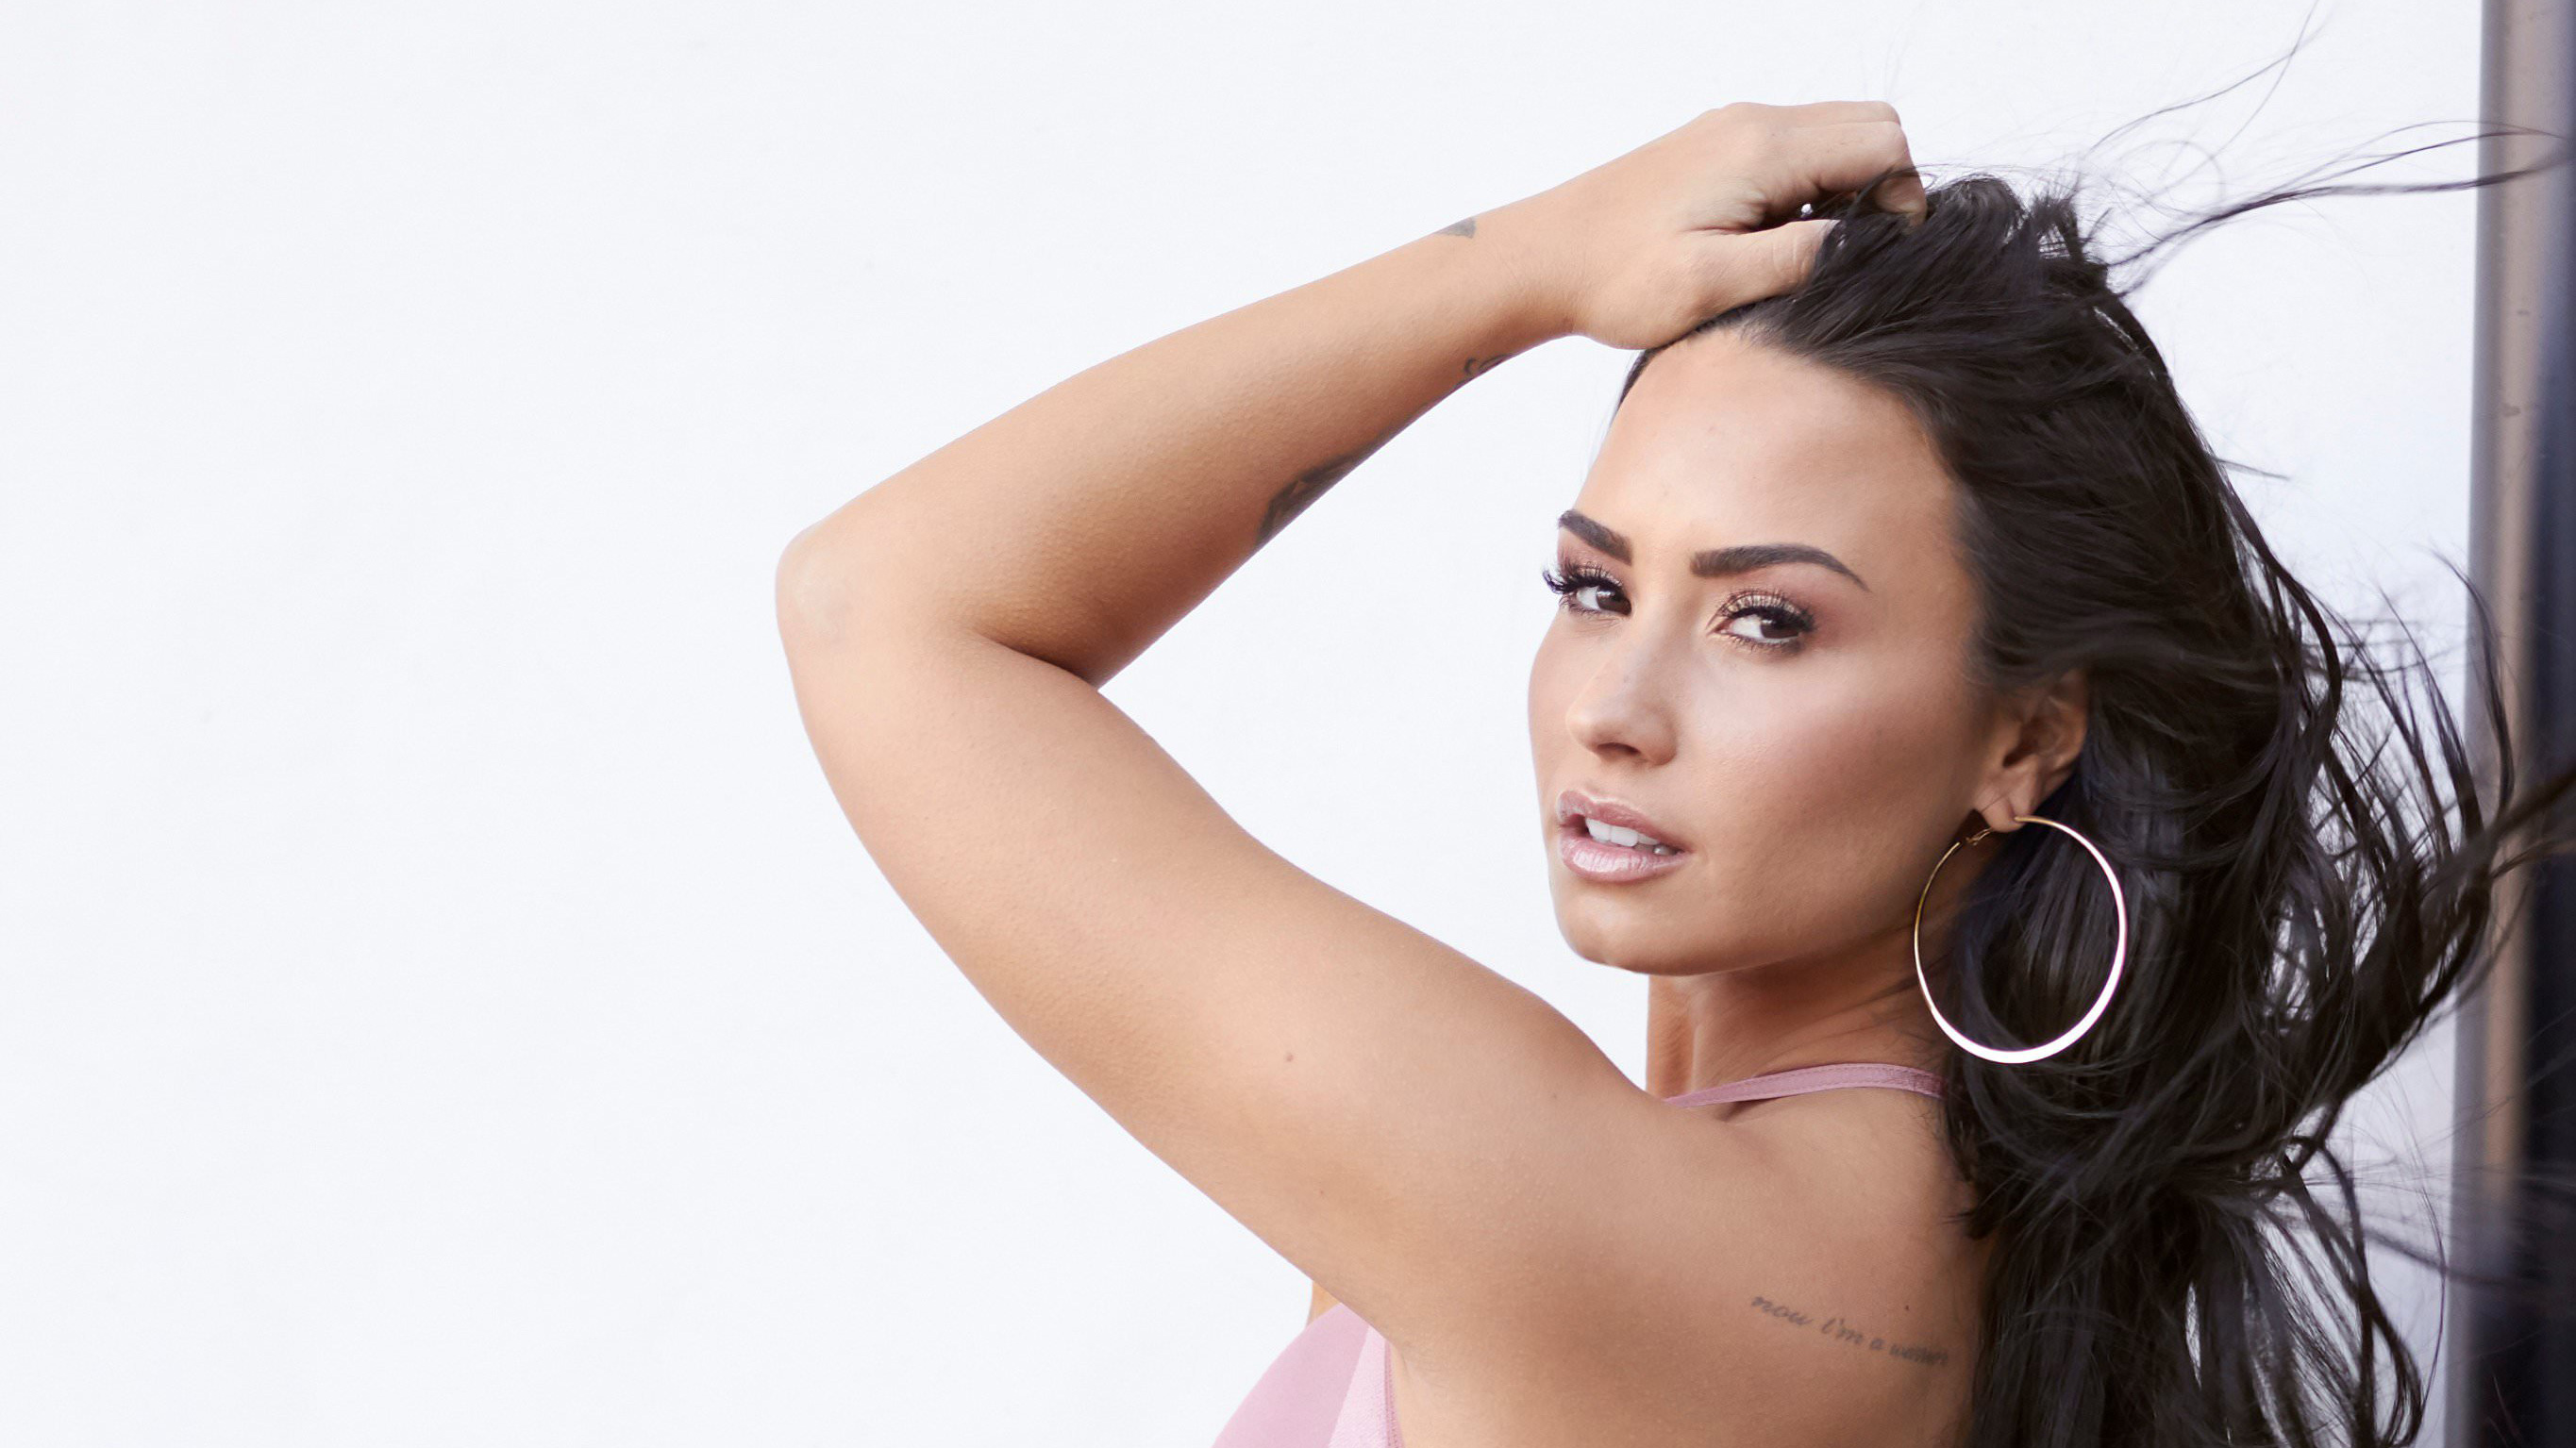 demi lovato 2018, hd music, 4k wallpapers, images, backgrounds